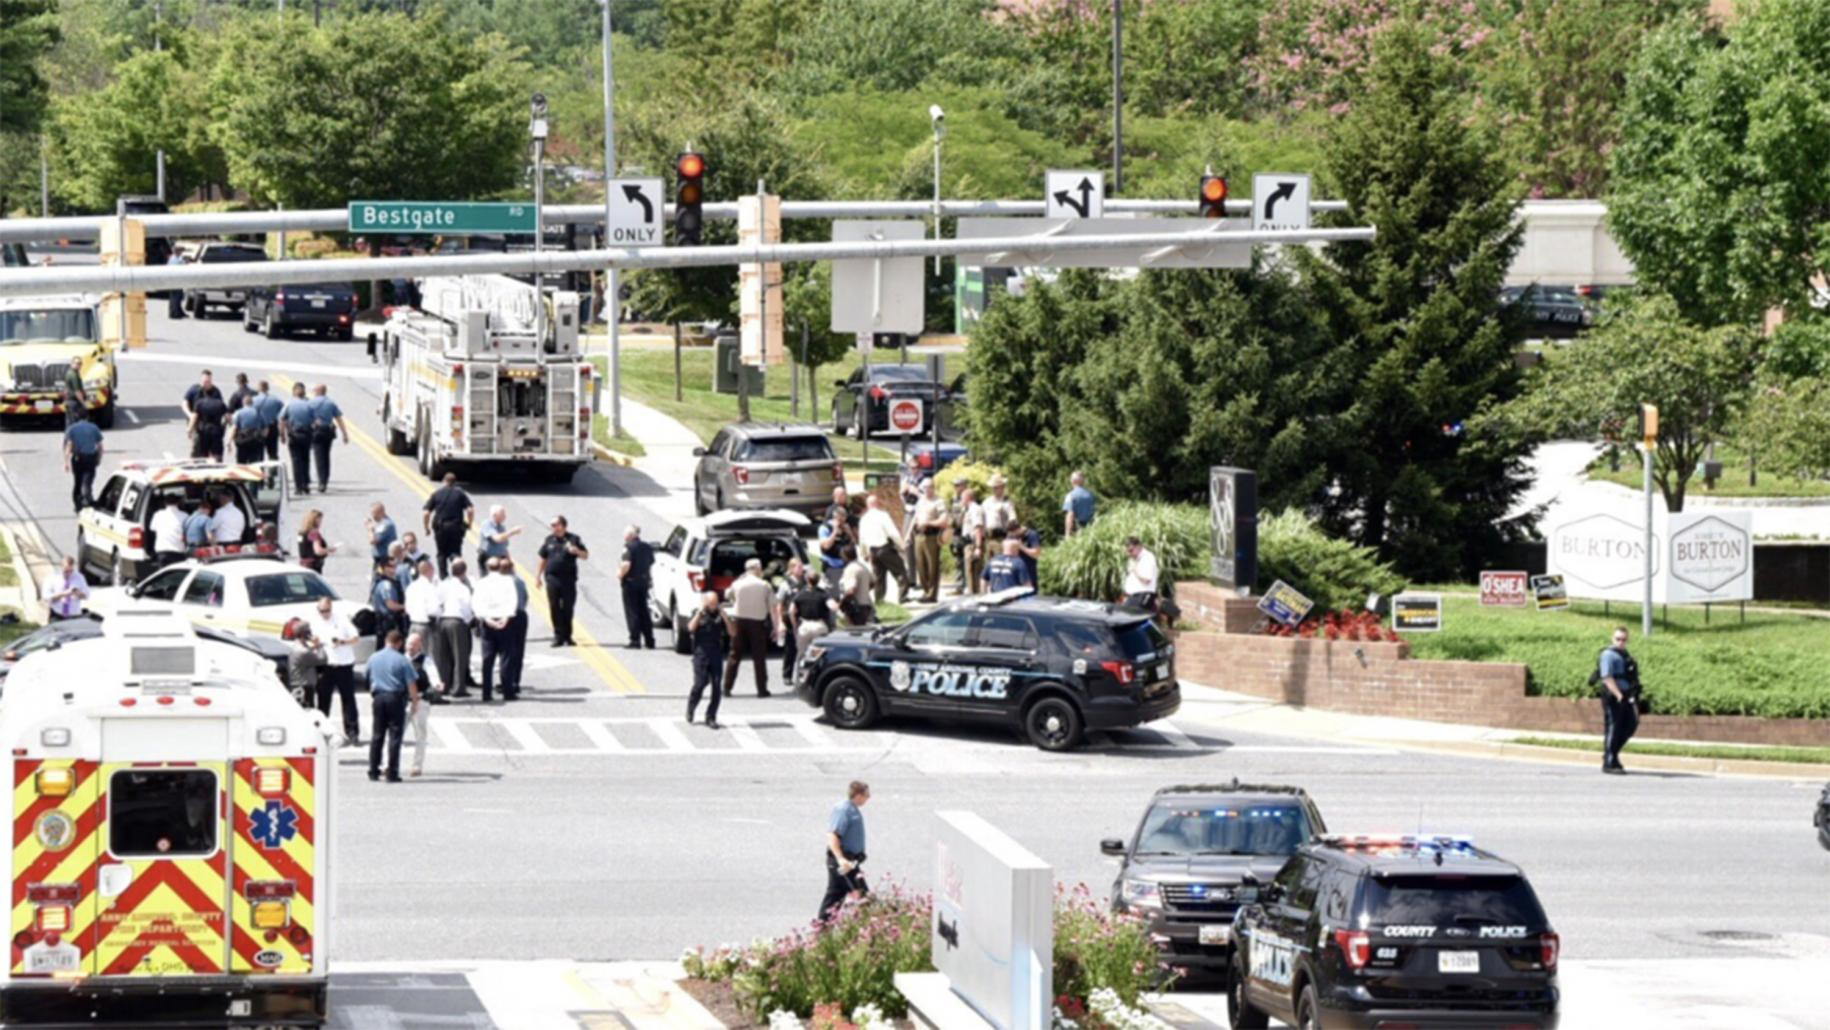 5 people killed in shooting at office of Capital Gazette in US